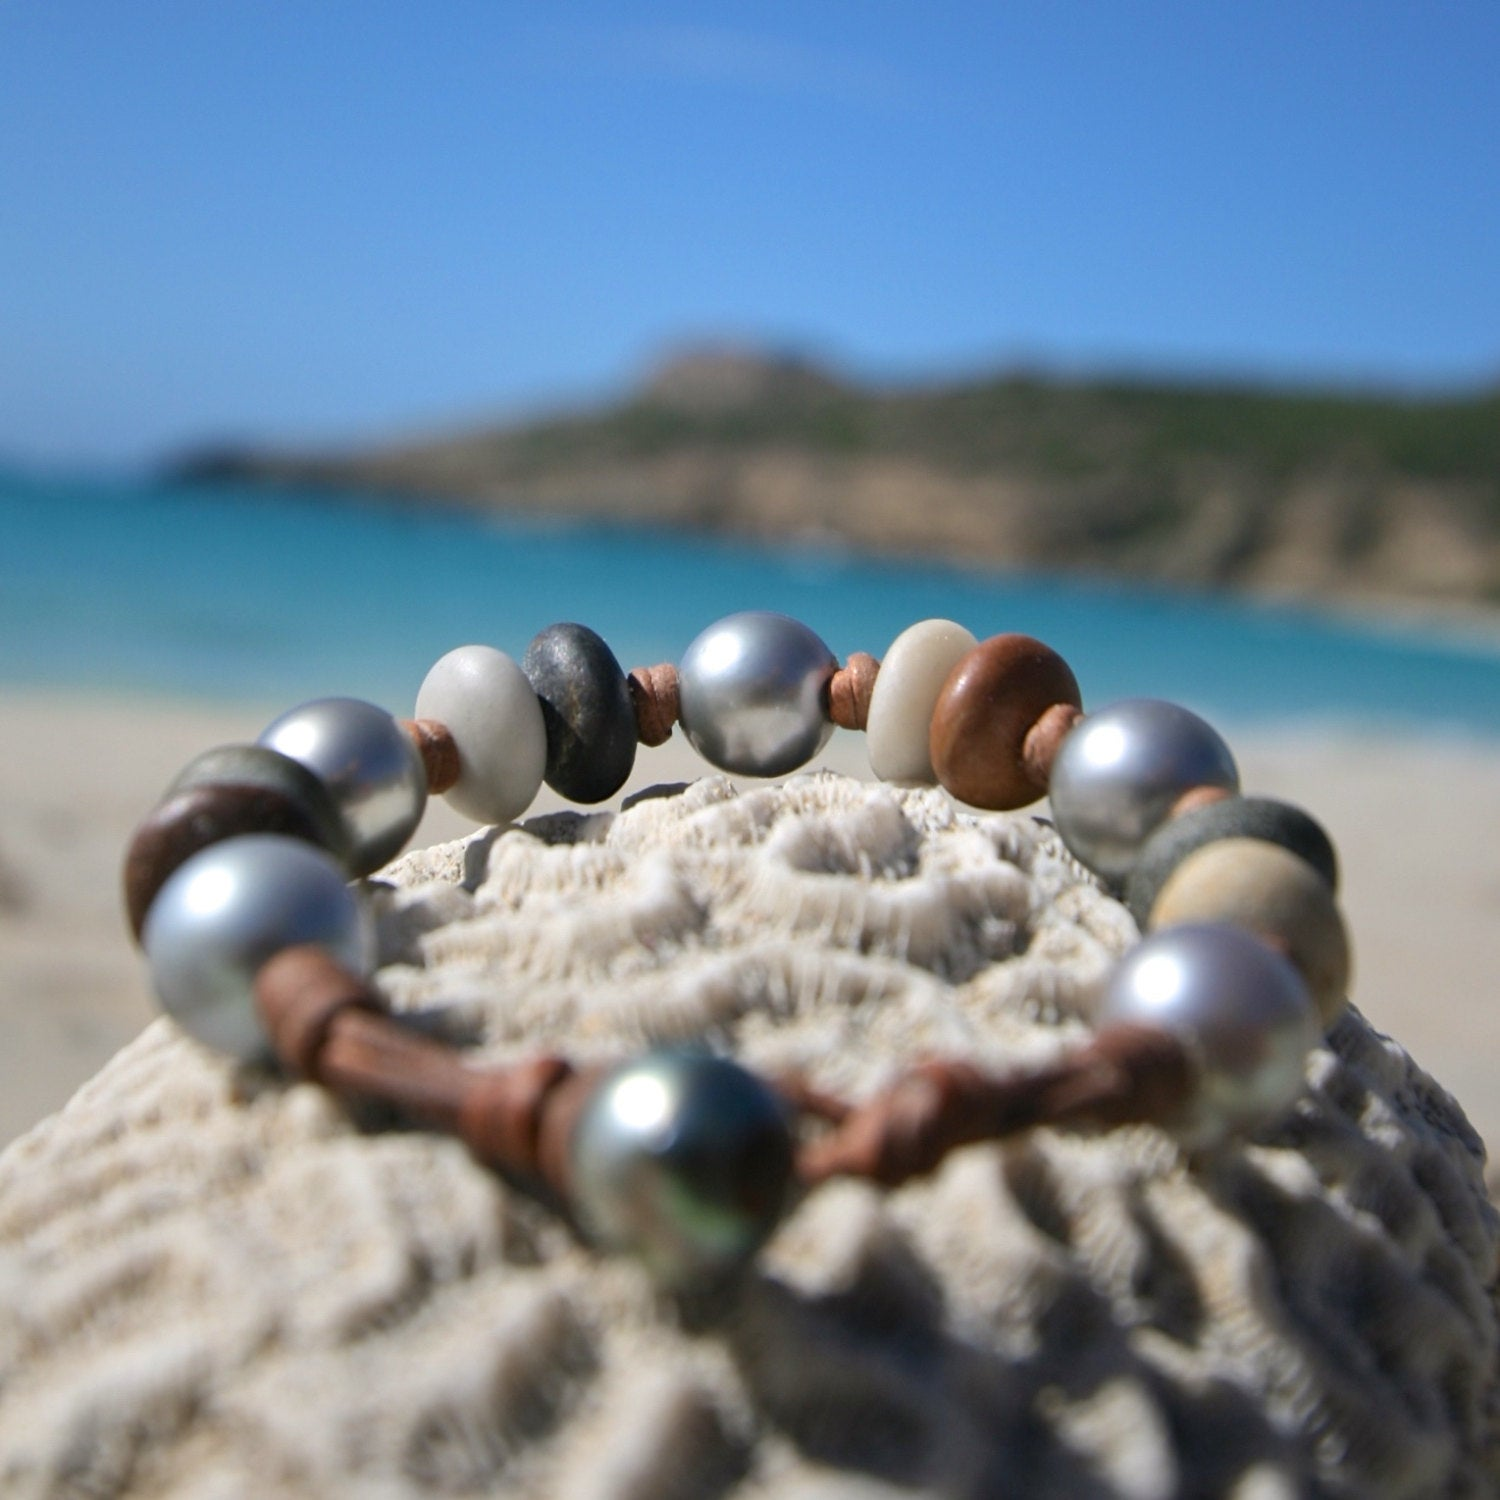 Tahitian round pearls and pebbles strung on leather for a perfect bohochic bracelet, beach summer jewelry, St Barts fashion, seaside coastal